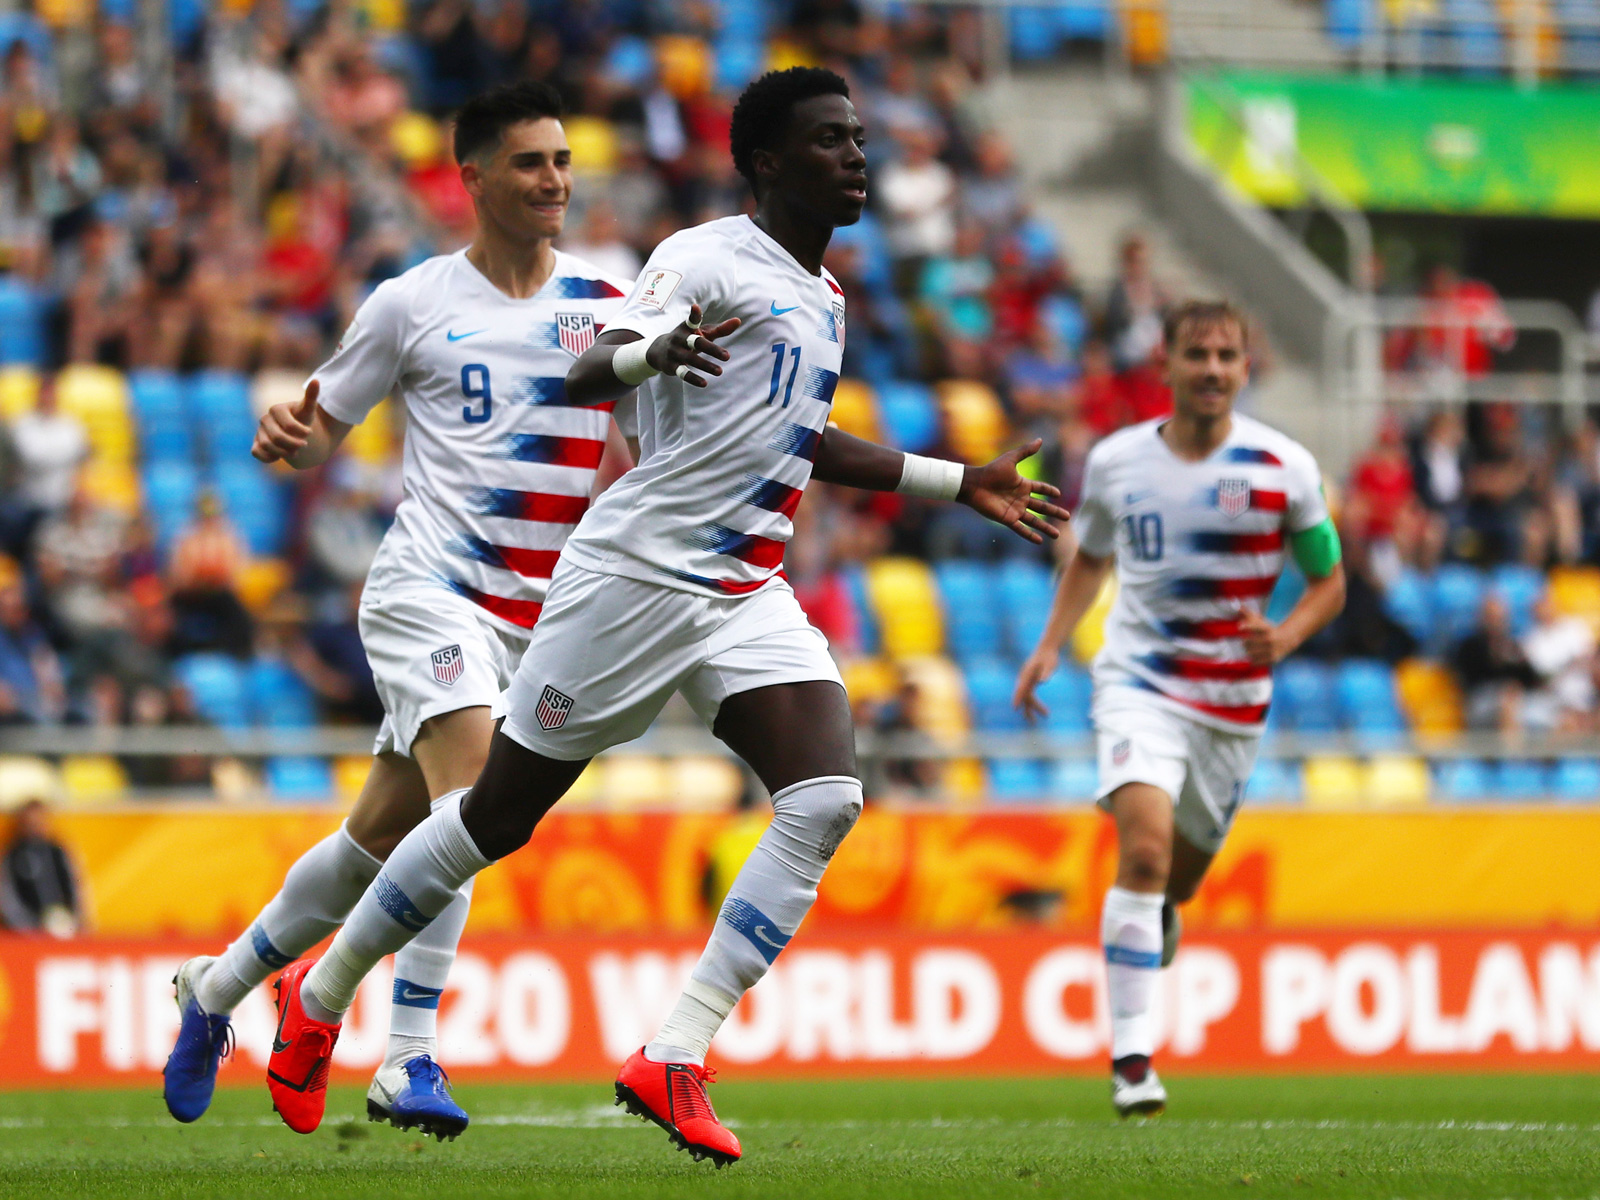 Tim Weah scores for the USA vs. Ecuador in the U-20 World Cup